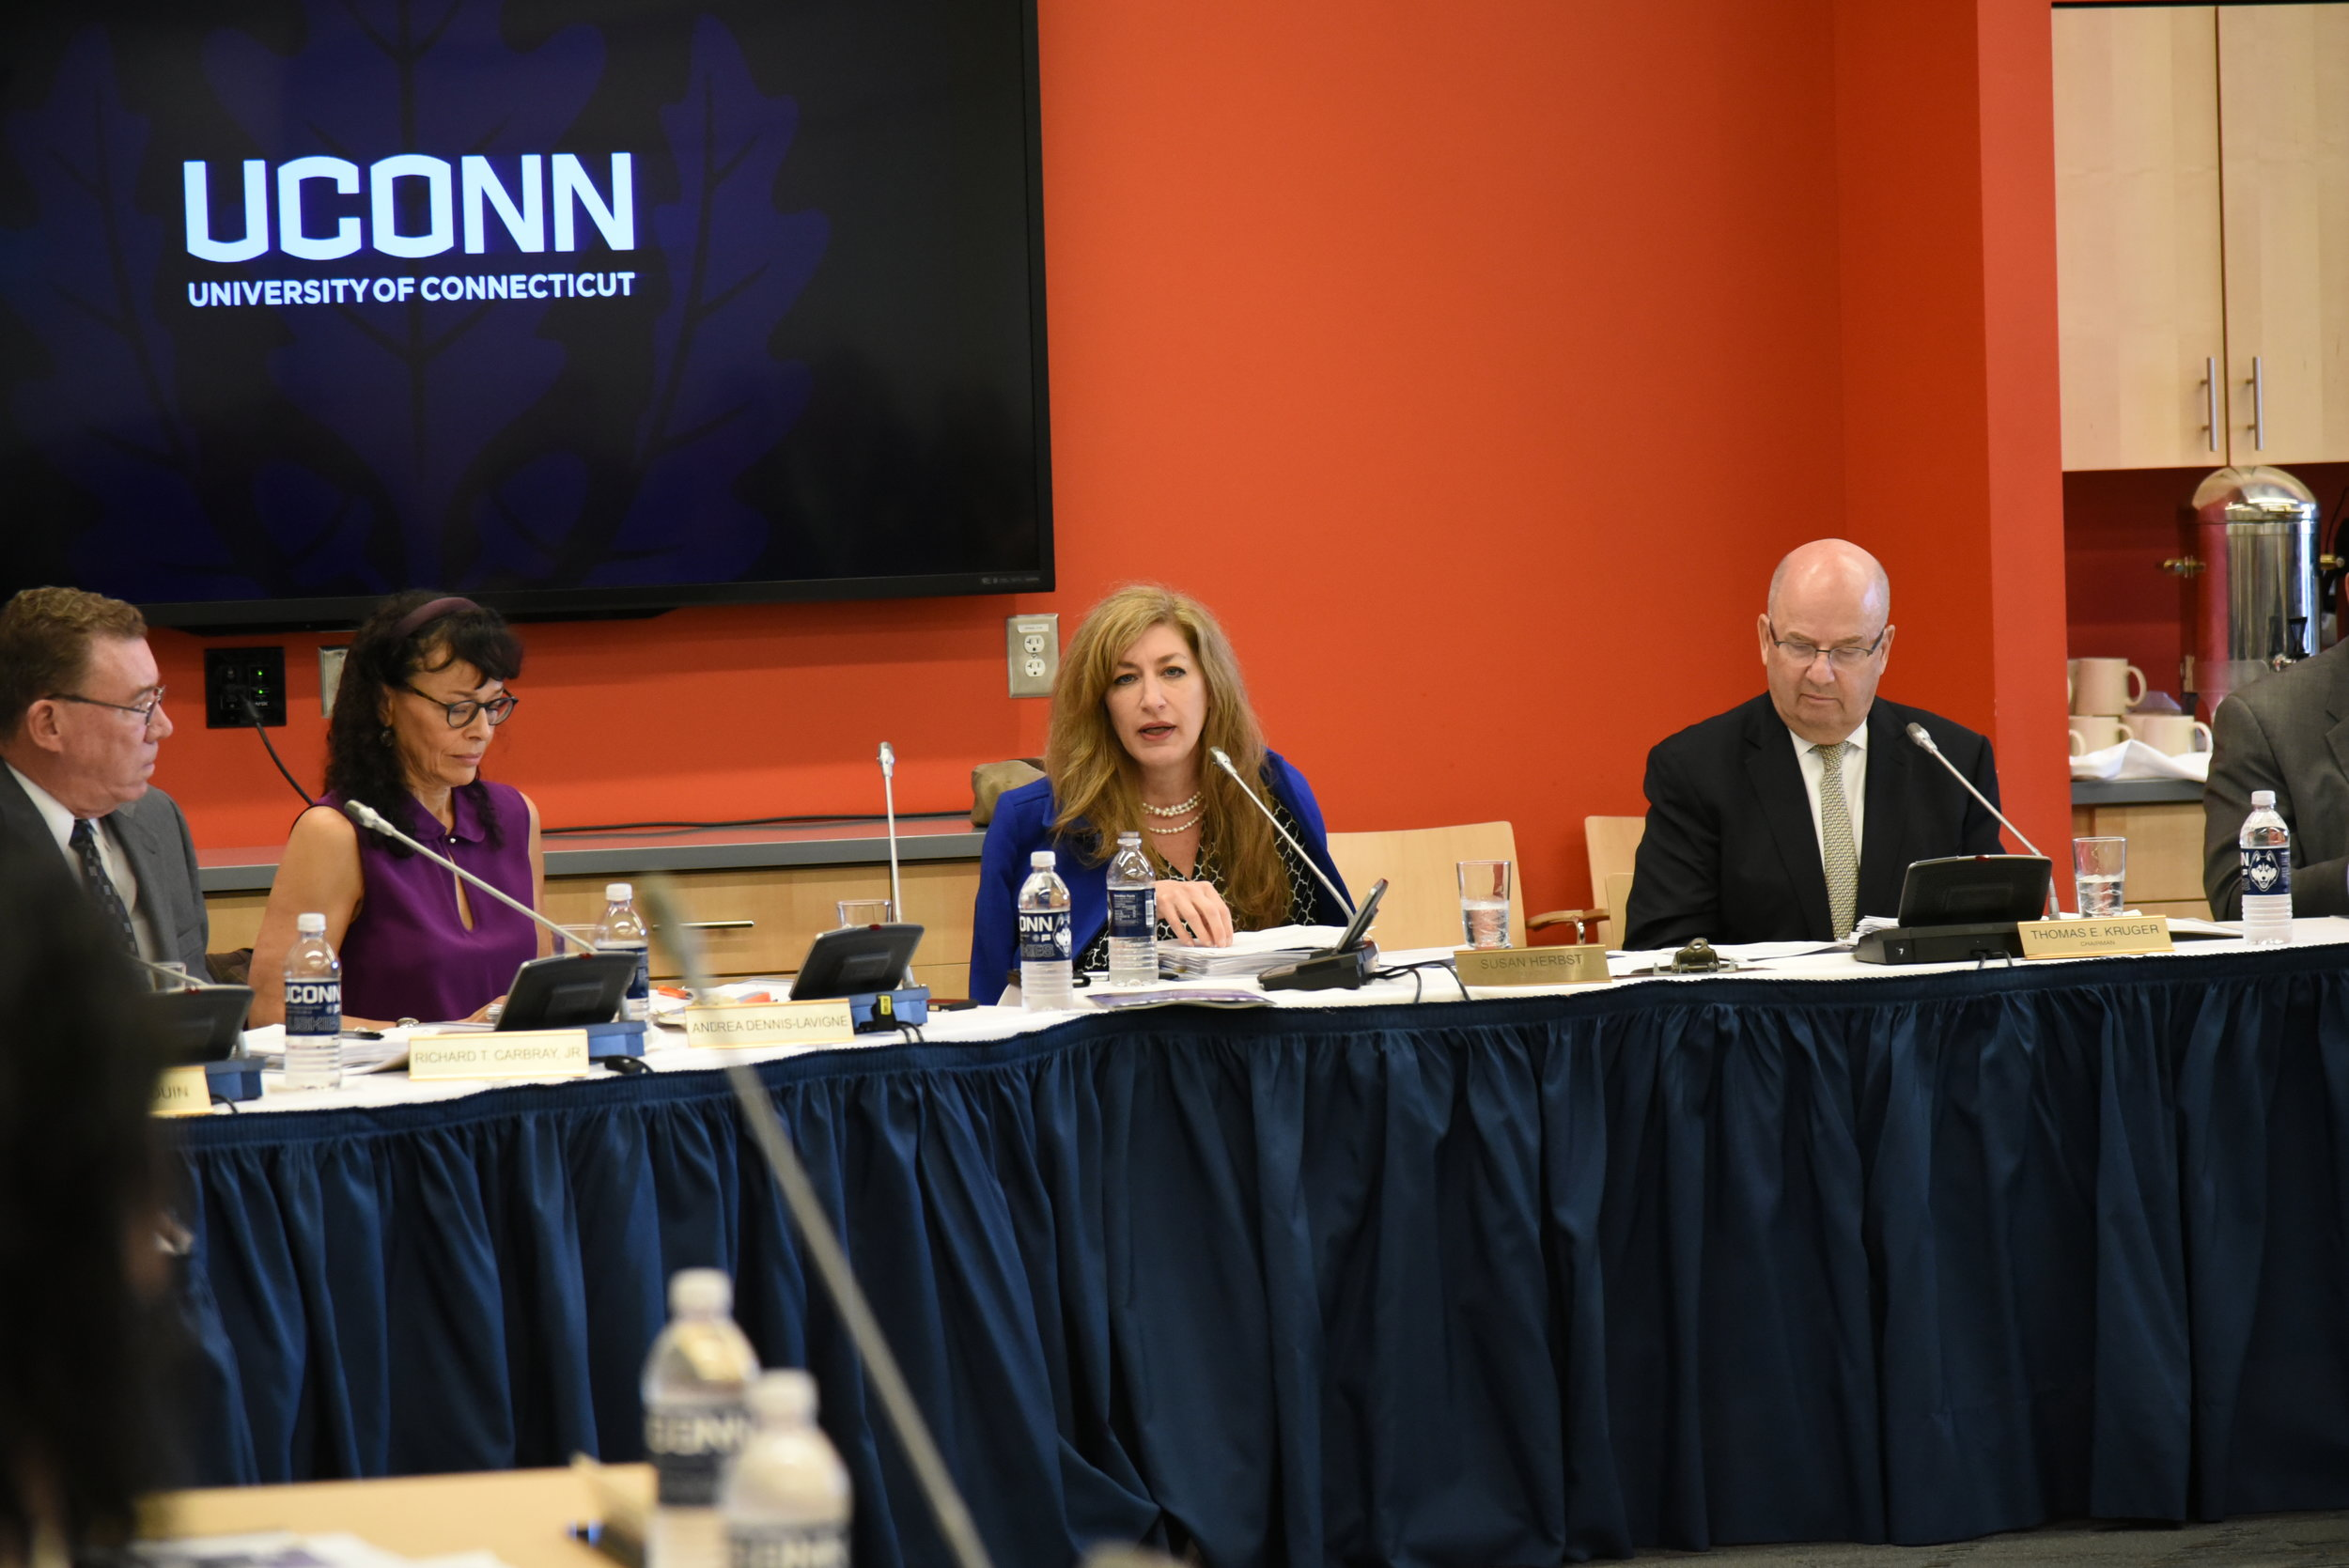 In Werth Tower, the Board of Trustees meets on Wednesday morning. They talked about the budget and events happening in UConn like HuskyThon.2/21/2018 Board of Trustees. (Photo by Charlotte Lao/The Daily Campus)